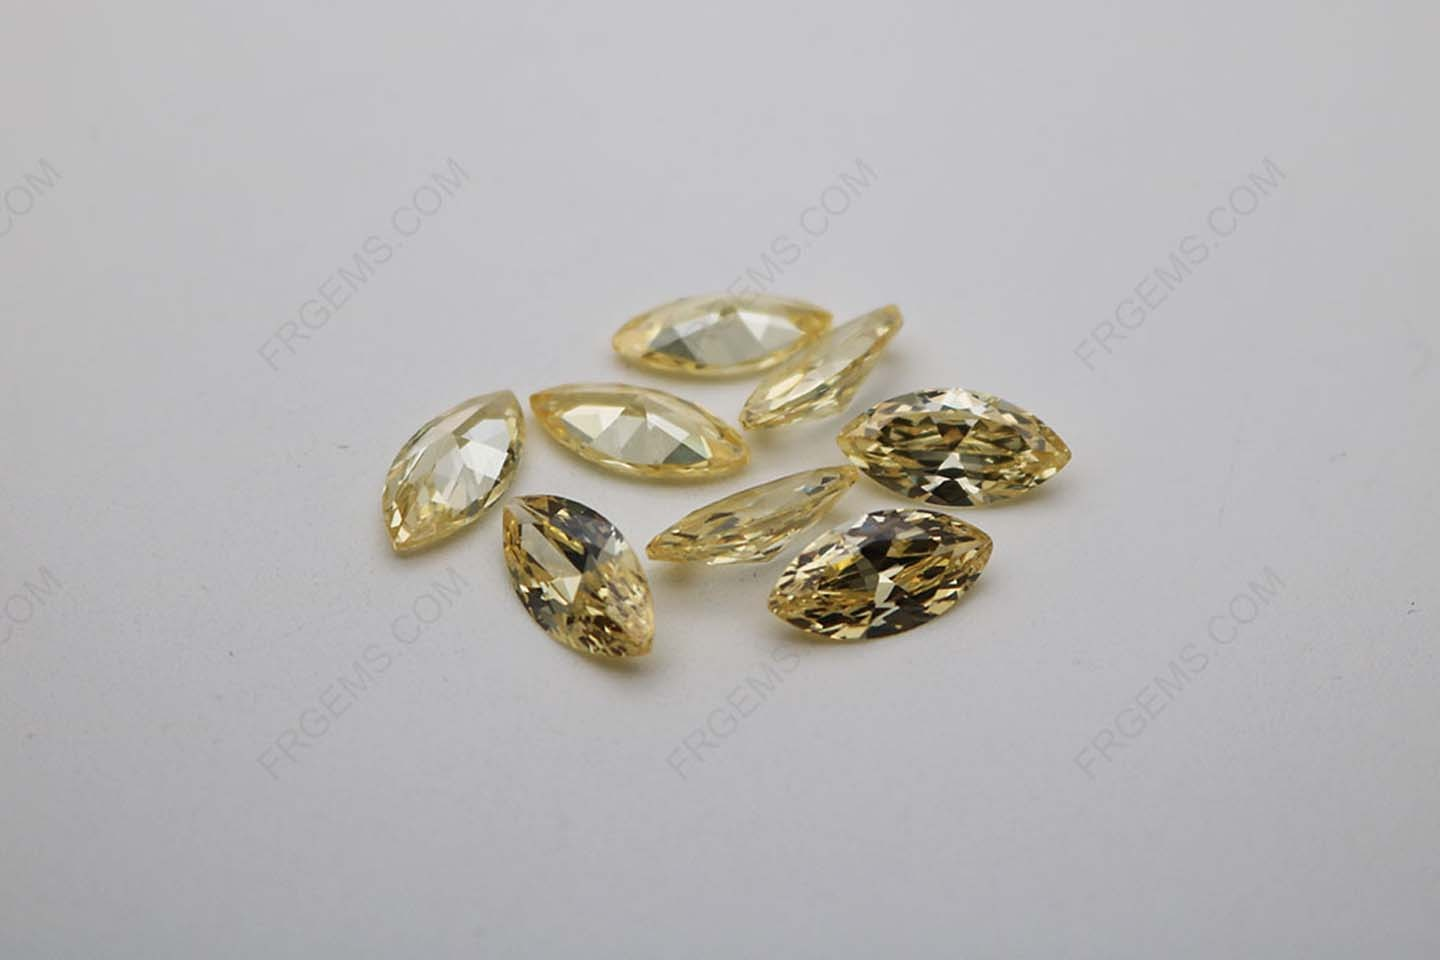 Cubic_Zirconia_Canary_Yellow_Marquise_Shape_10x5mm_stones_IMG_1021